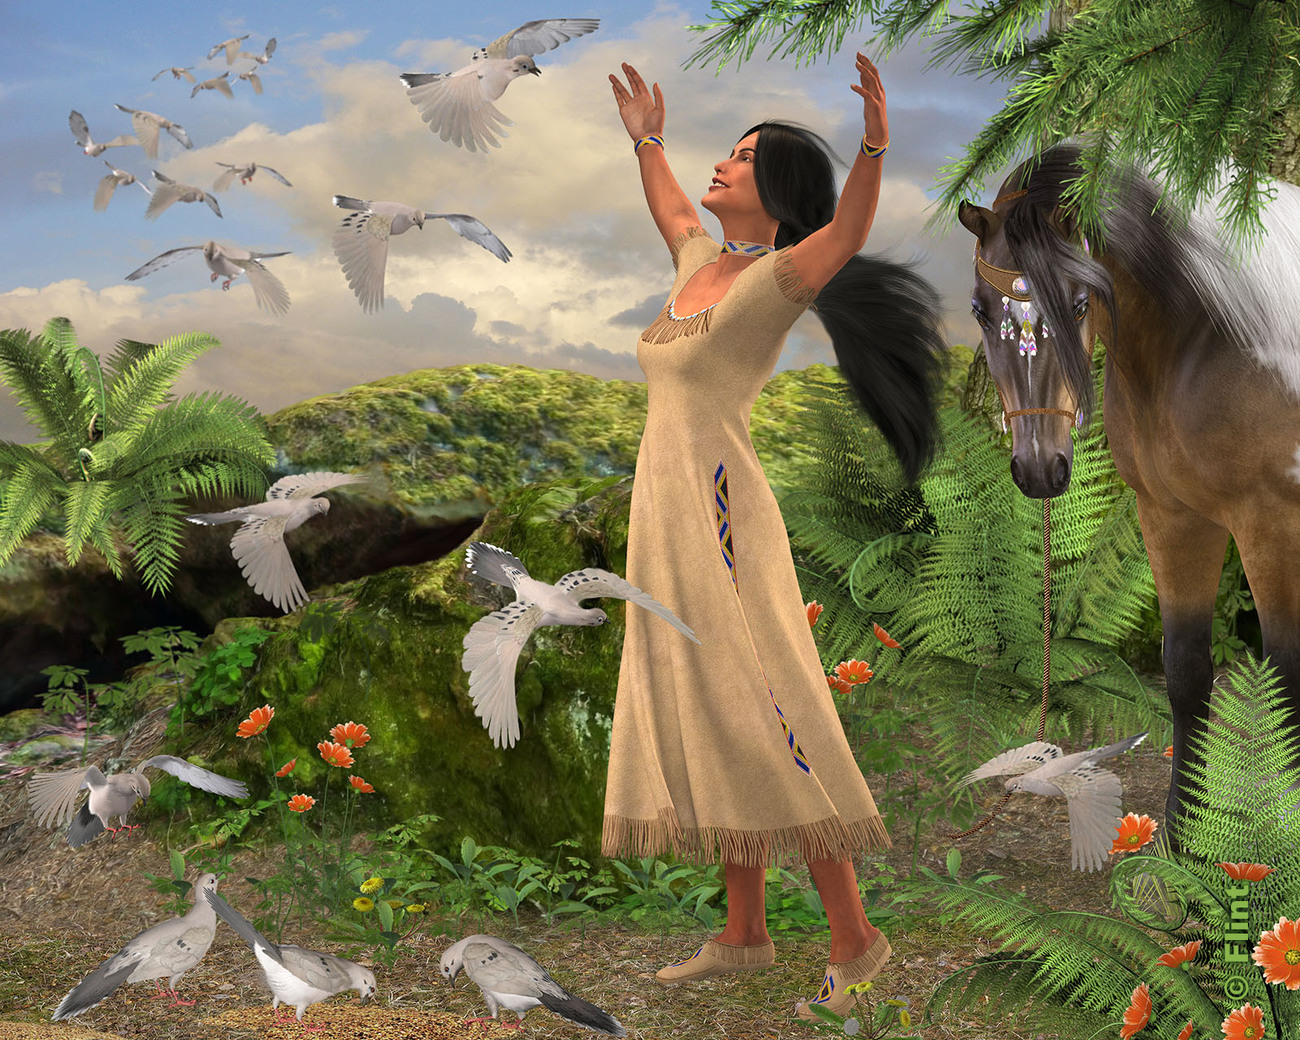 Greeting Her Feathered Friends by Flint_Hawk